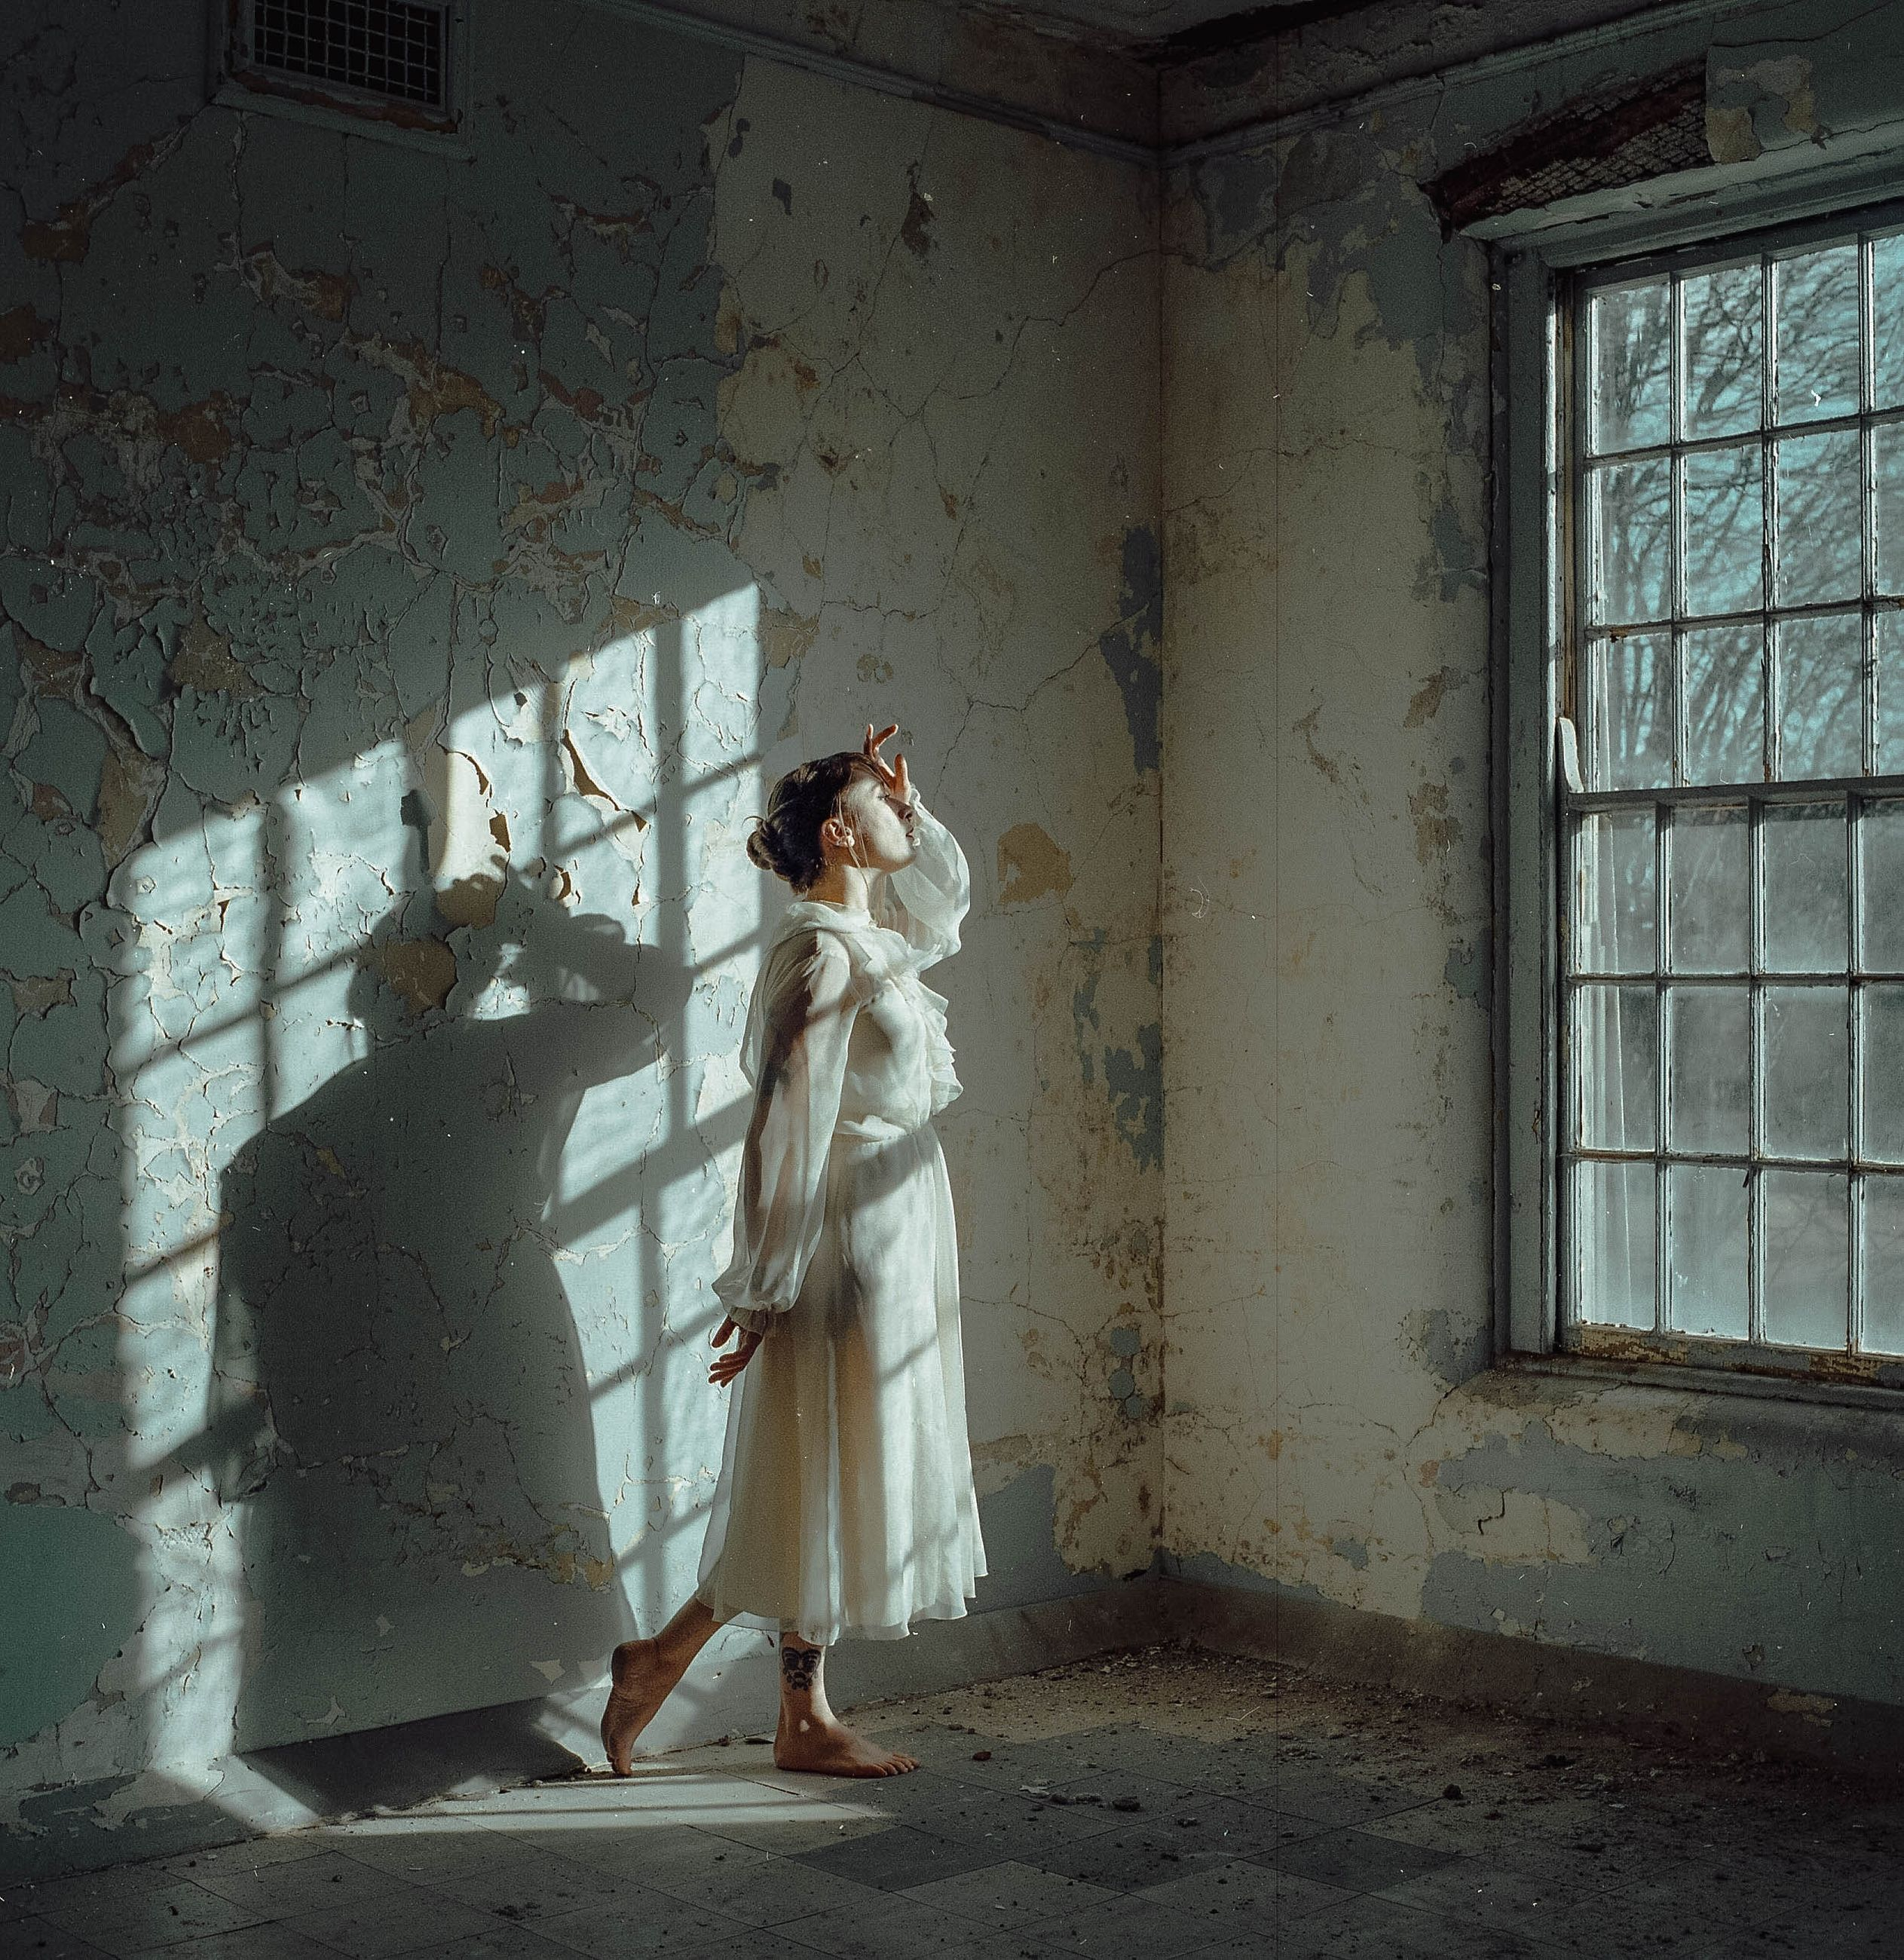 women, indoors, real people, full length, standing, adult, wall - building feature, abandoned, architecture, window, sunlight, built structure, day, people, lifestyles, leisure activity, two people, clothing, men, building, deterioration